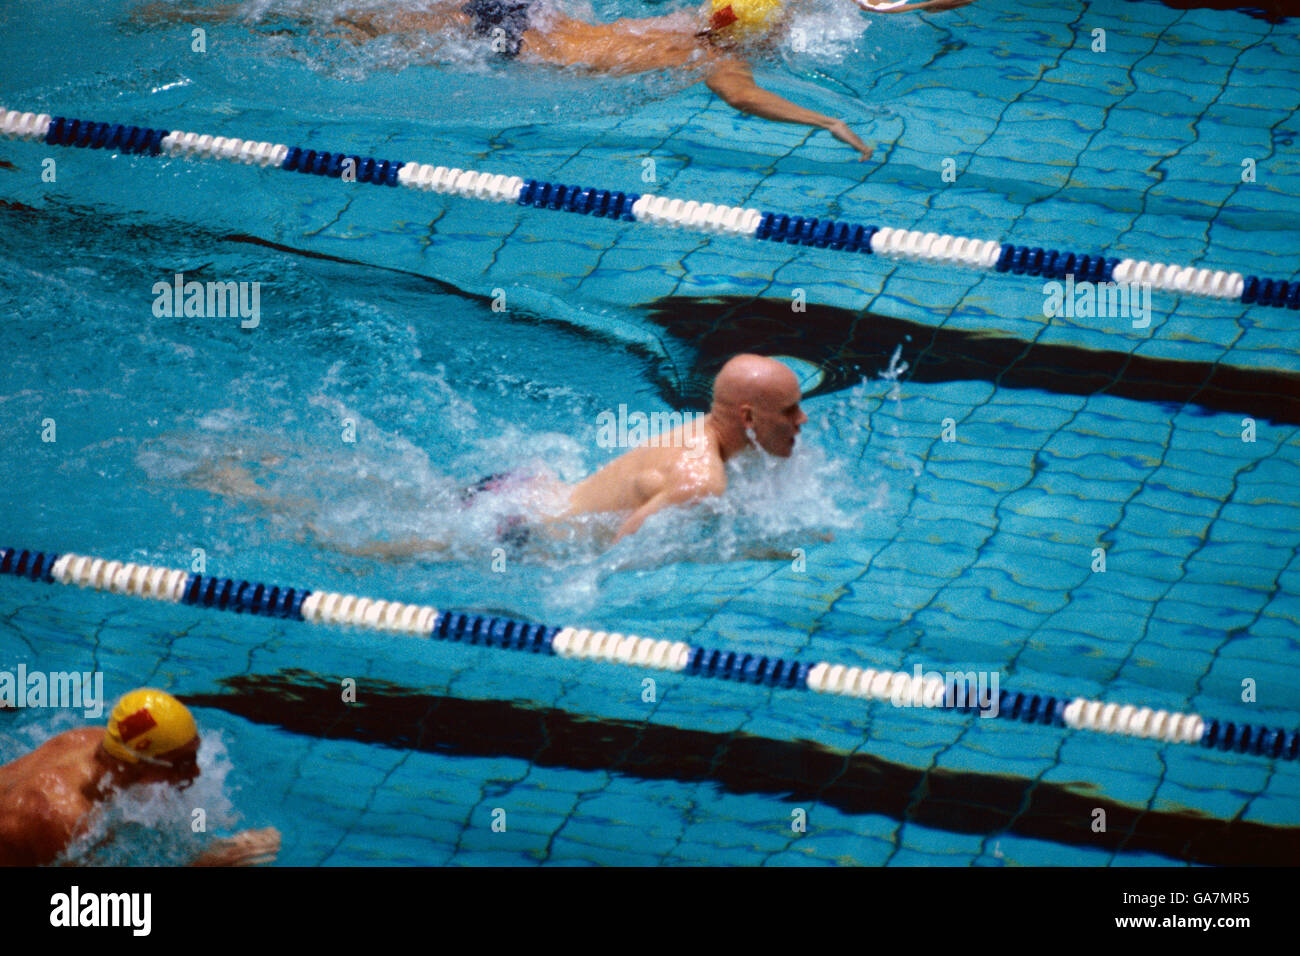 olympic games moscow olympics 1980 swimming mens 100m breaststroke - Olympic Swimming Breaststroke